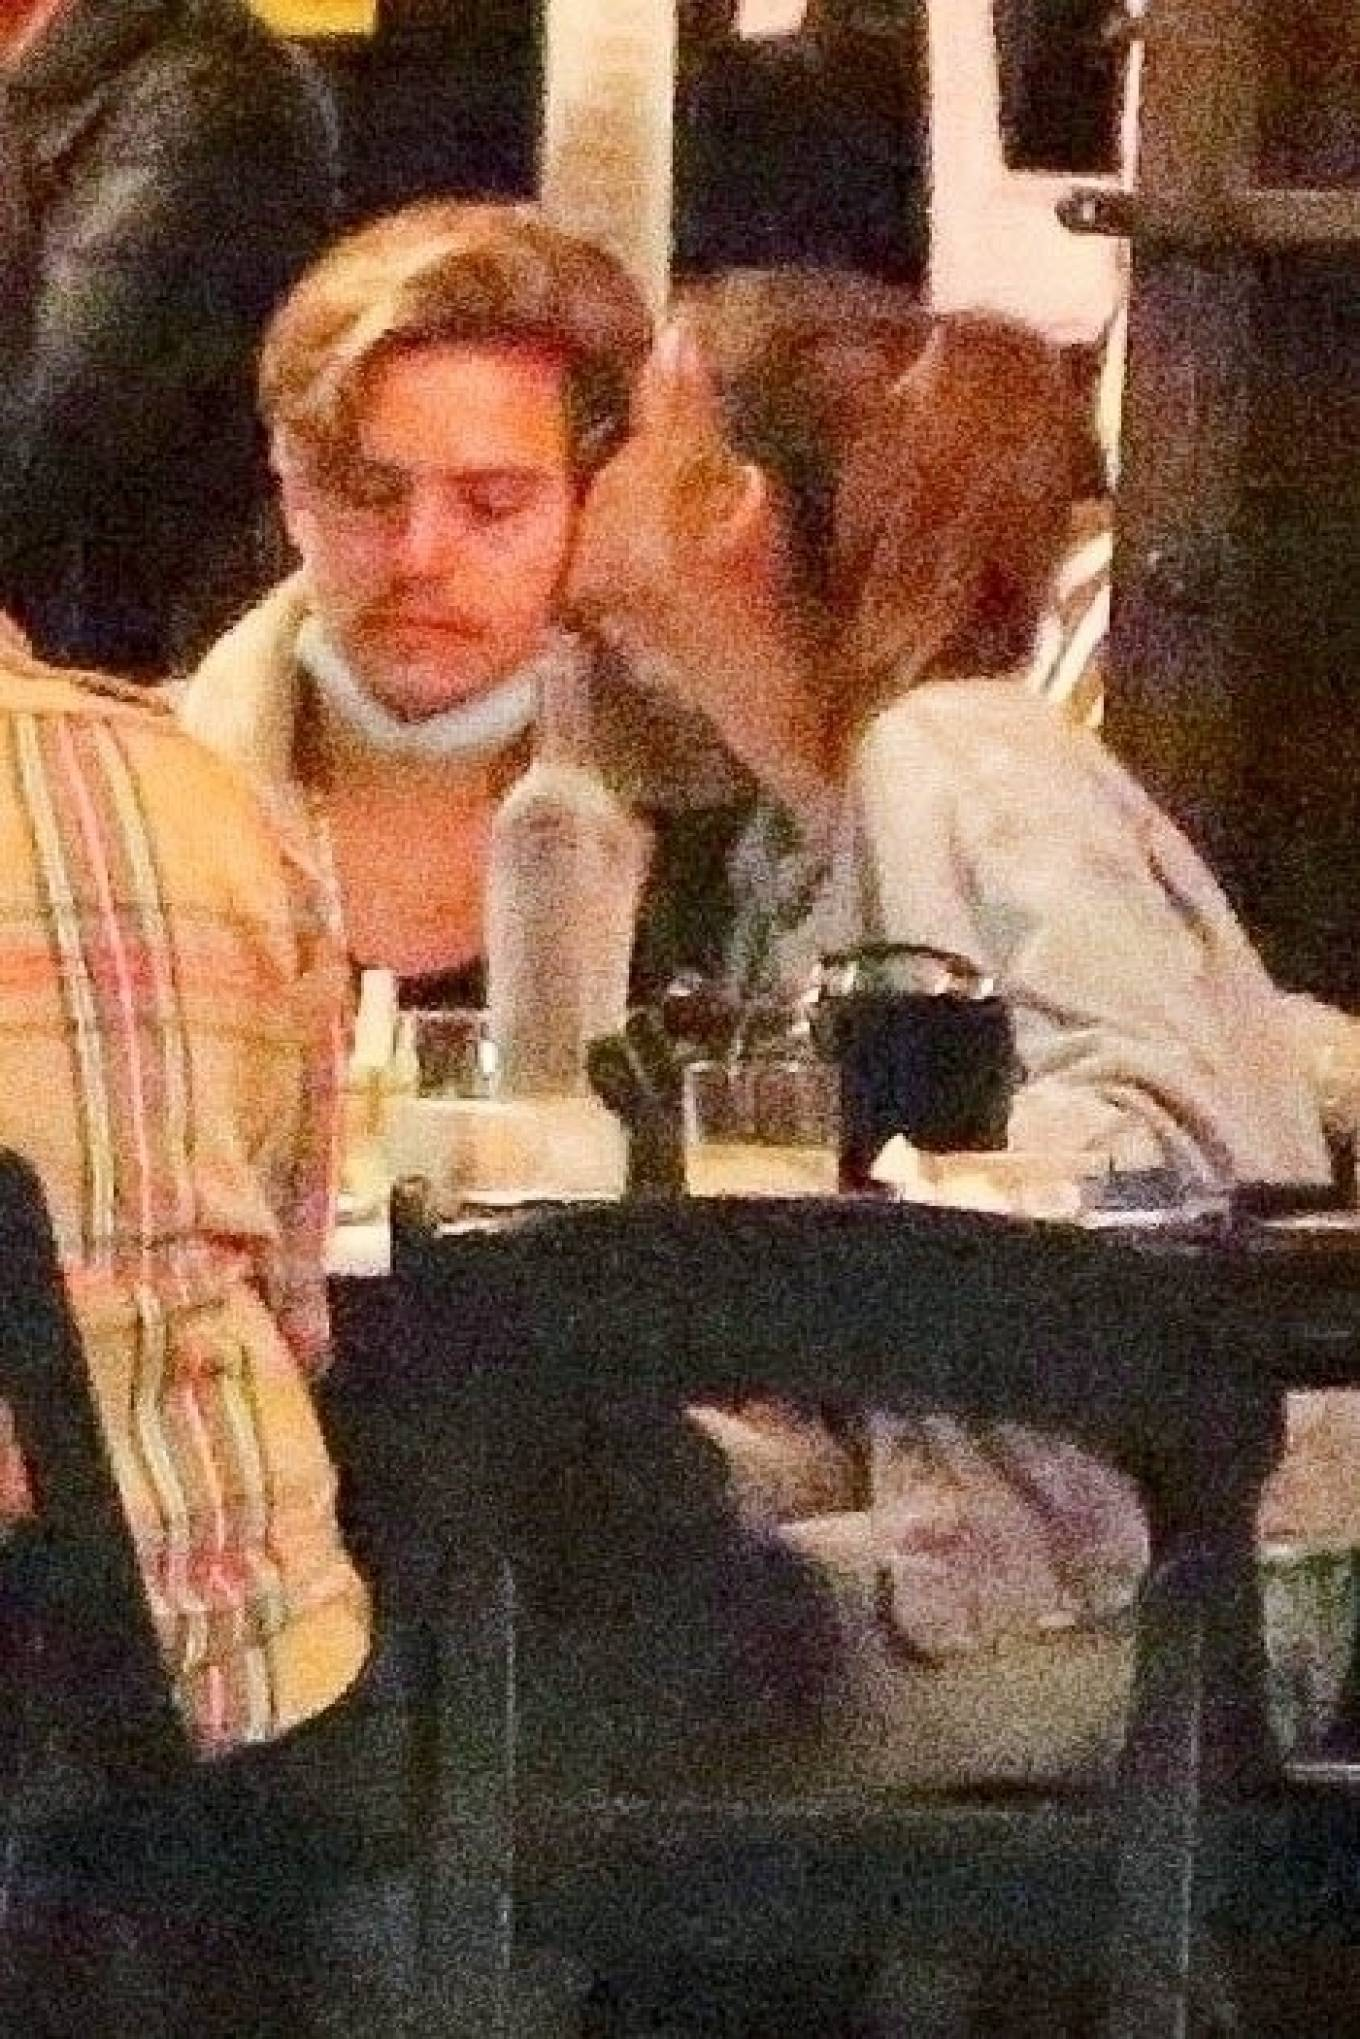 Barbara Palvin 2020 : Dylan Sprouse and Barbara Palvin with KJ Apa and Stella Maxwell – Night out in Silverlake -18